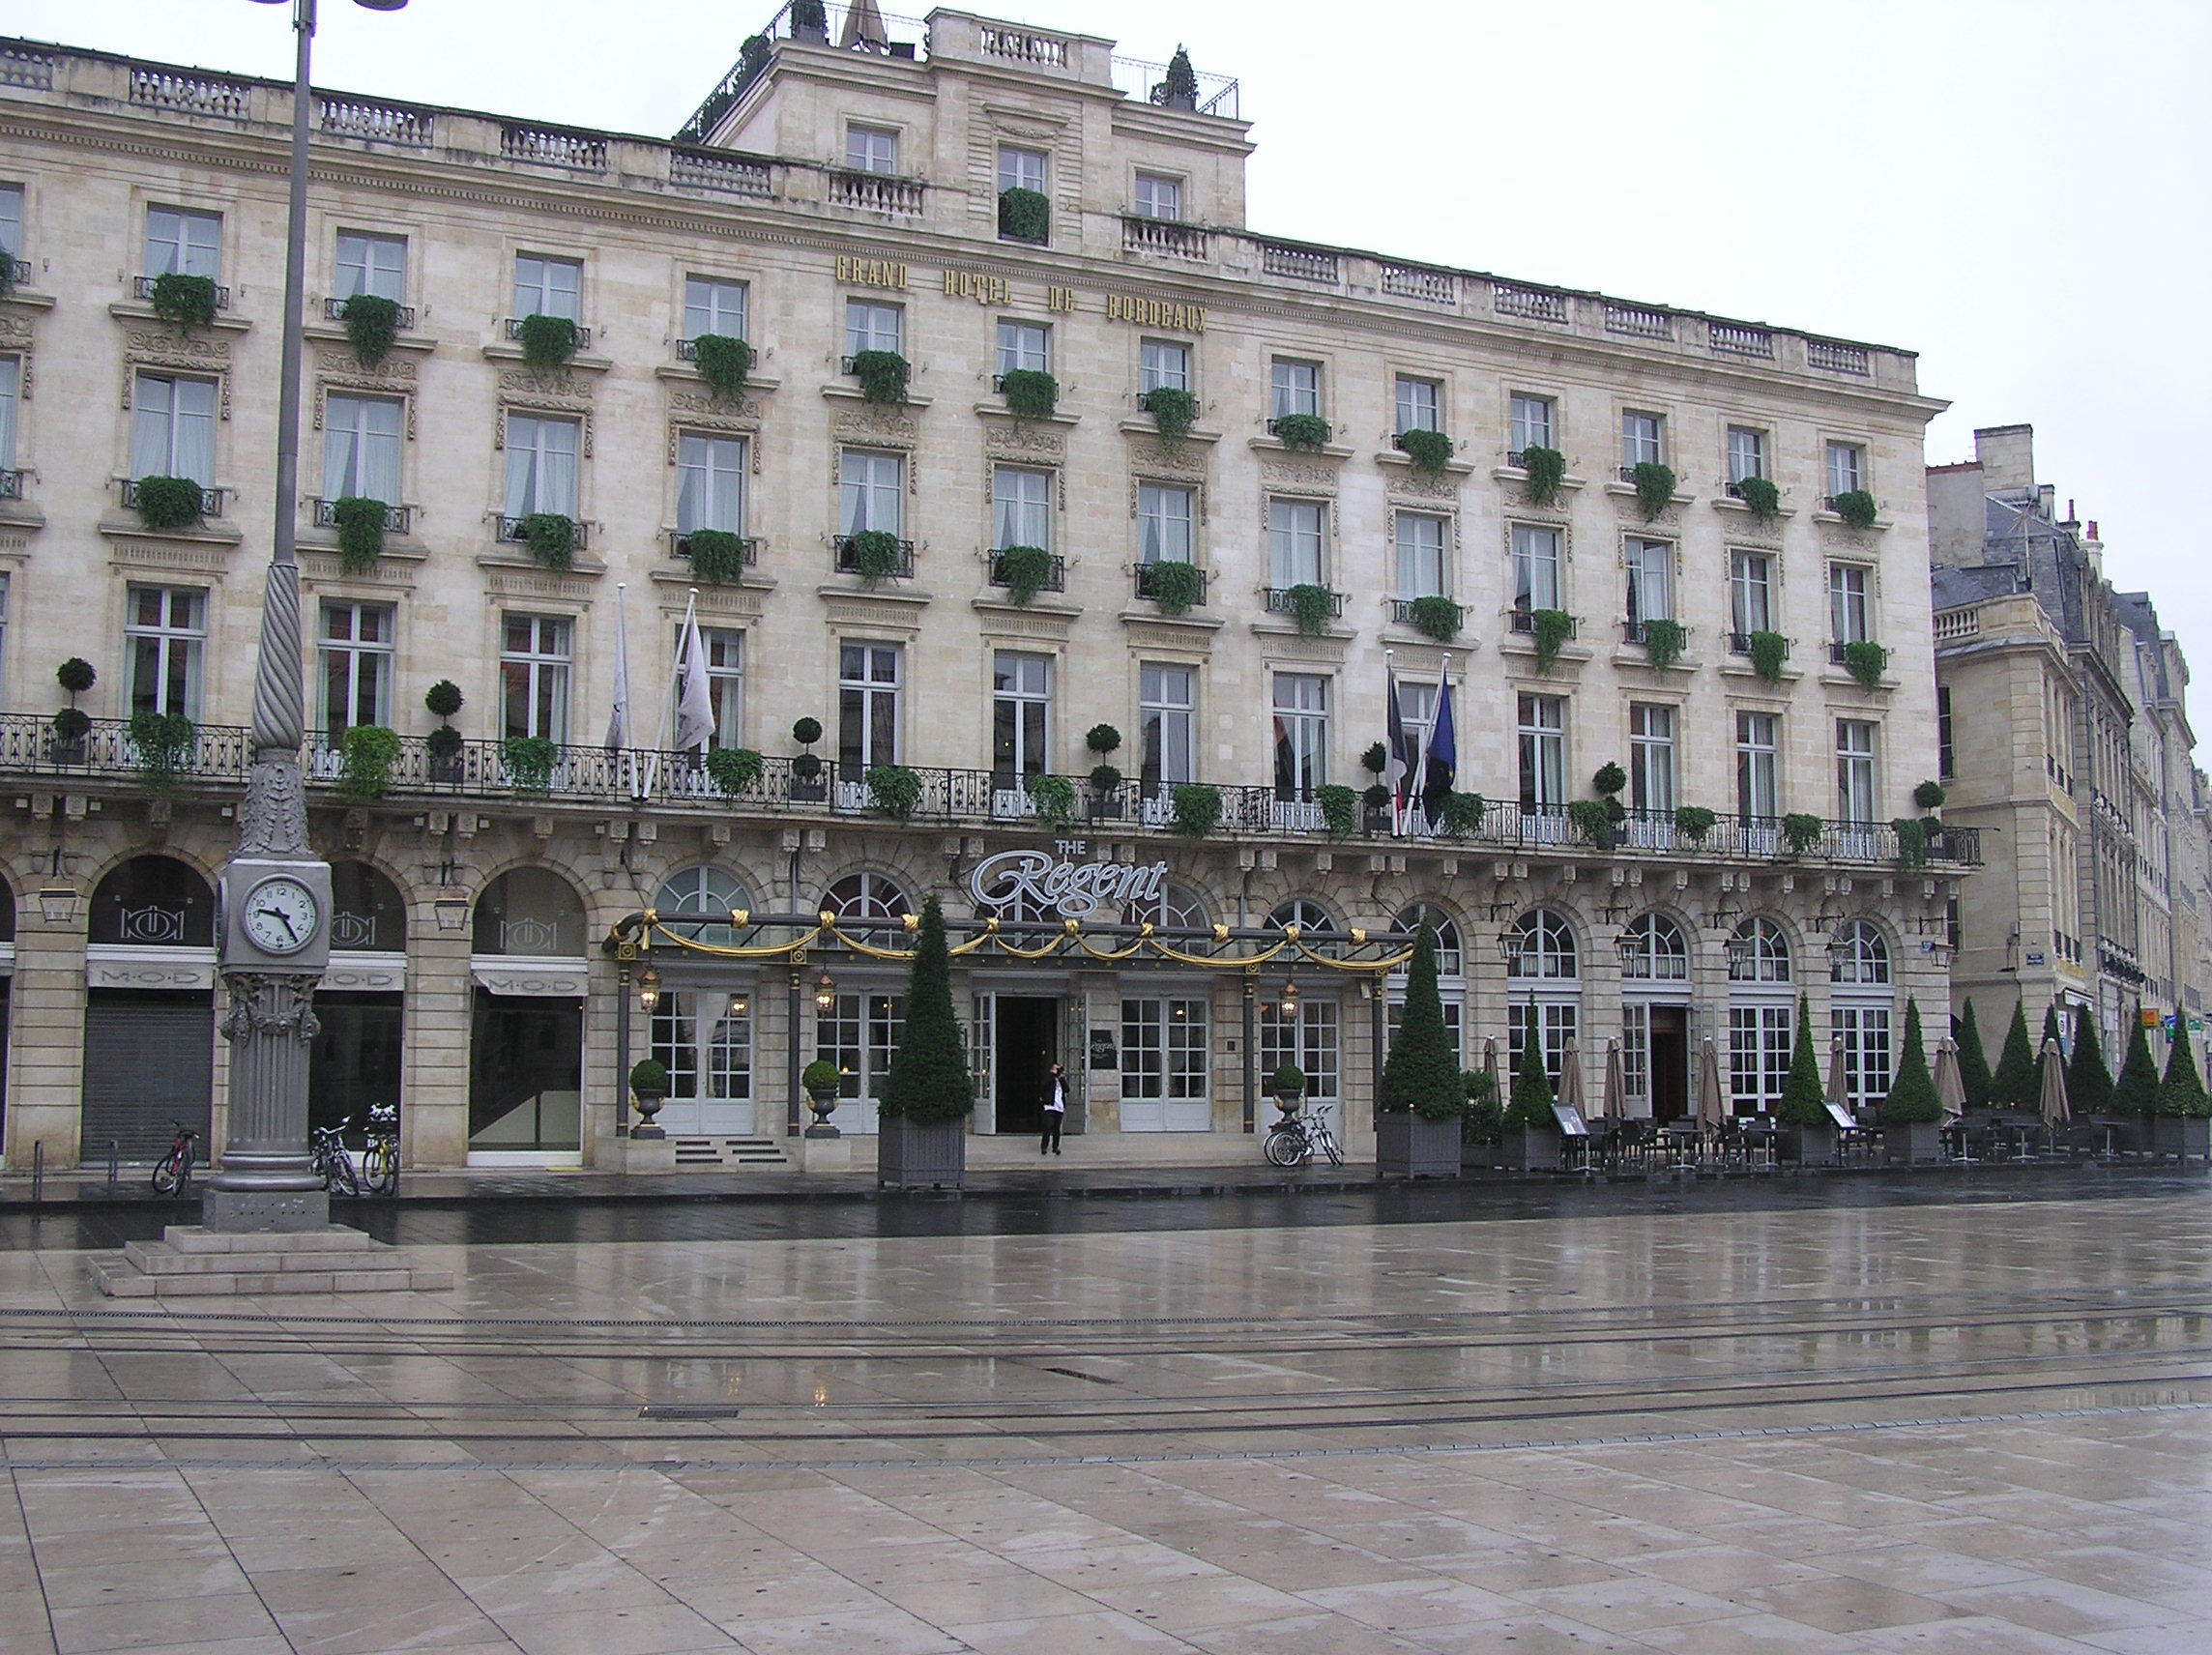 http://fr.academic.ru/pictures/frwiki/66/Bordeaux_The_Regent_Grand_Hotel_Bordeaux.JPG